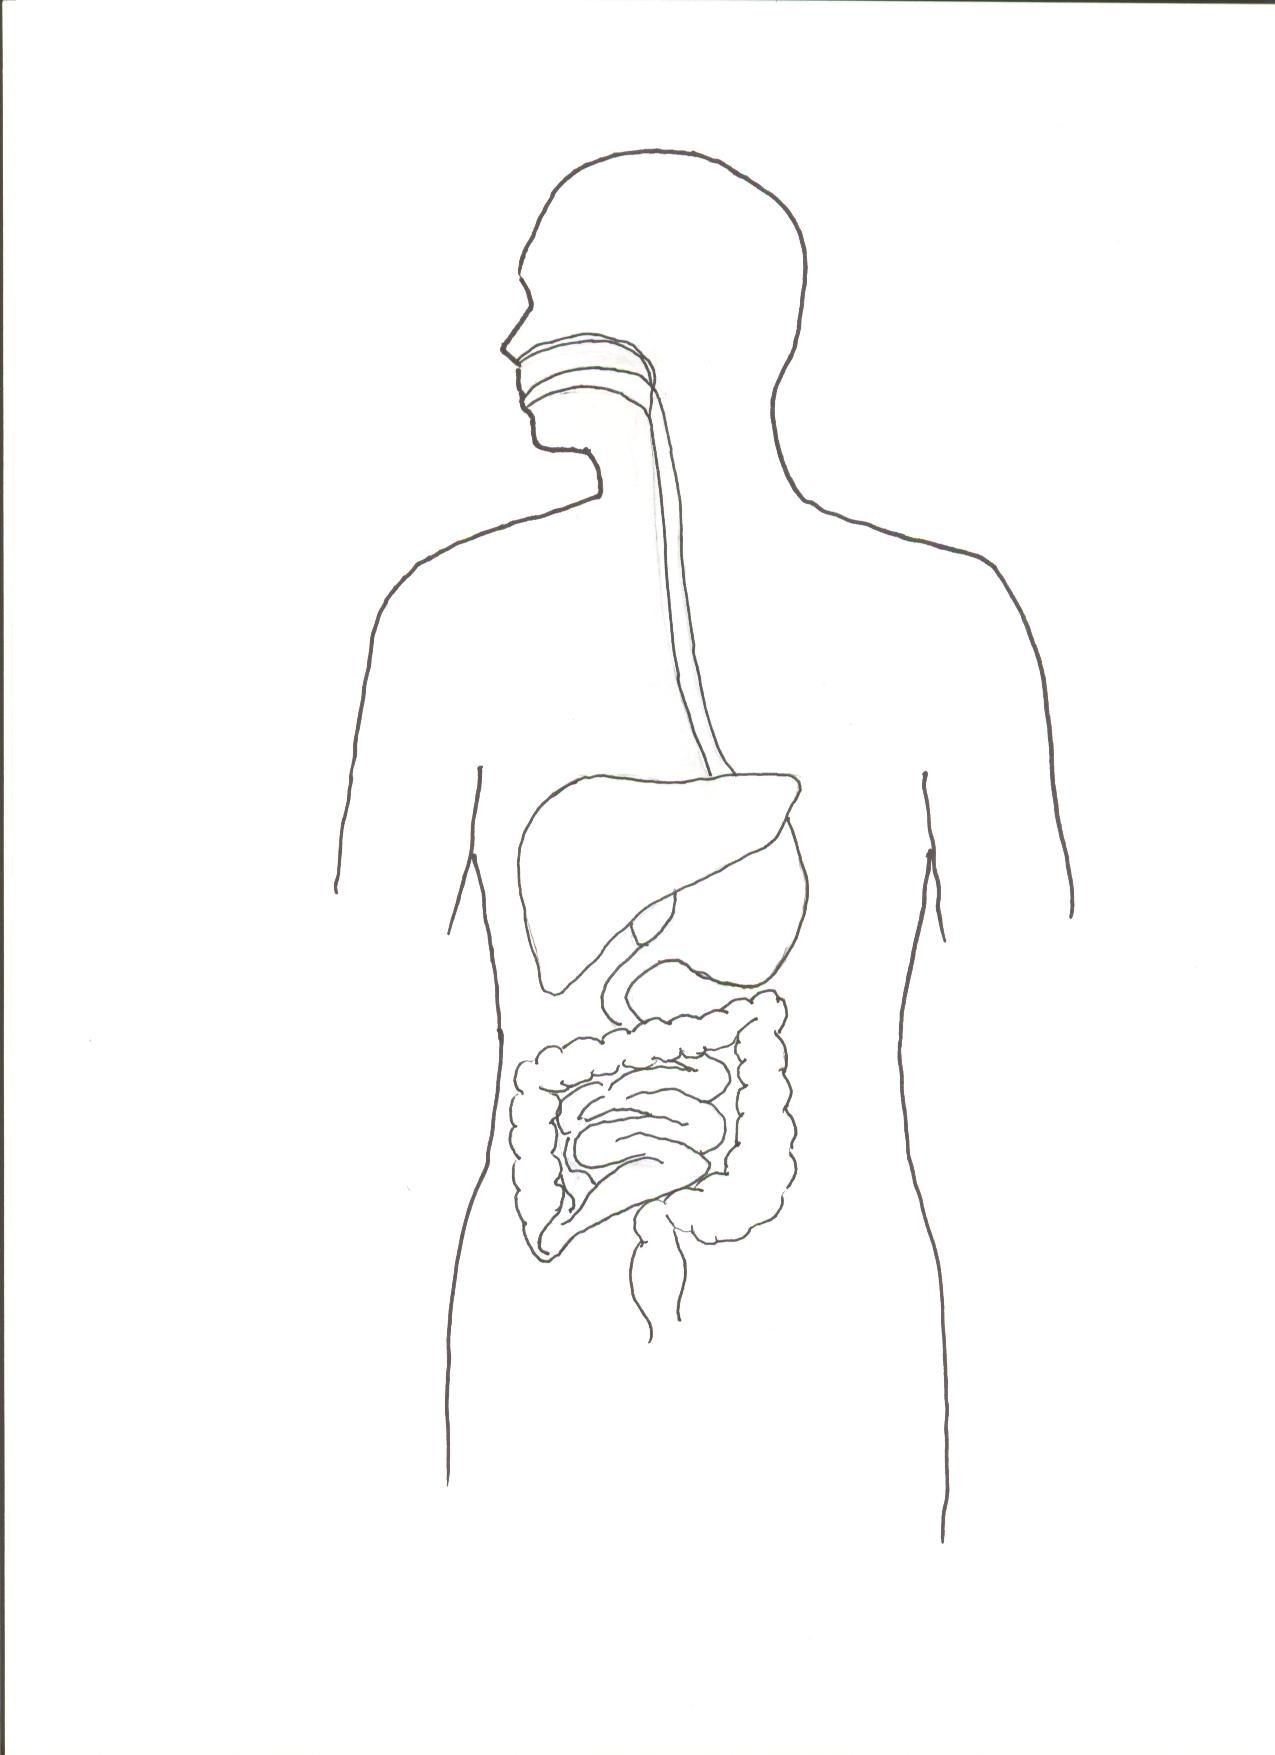 Digestive System Coloring Worksheet Digestive System Color Worksheet